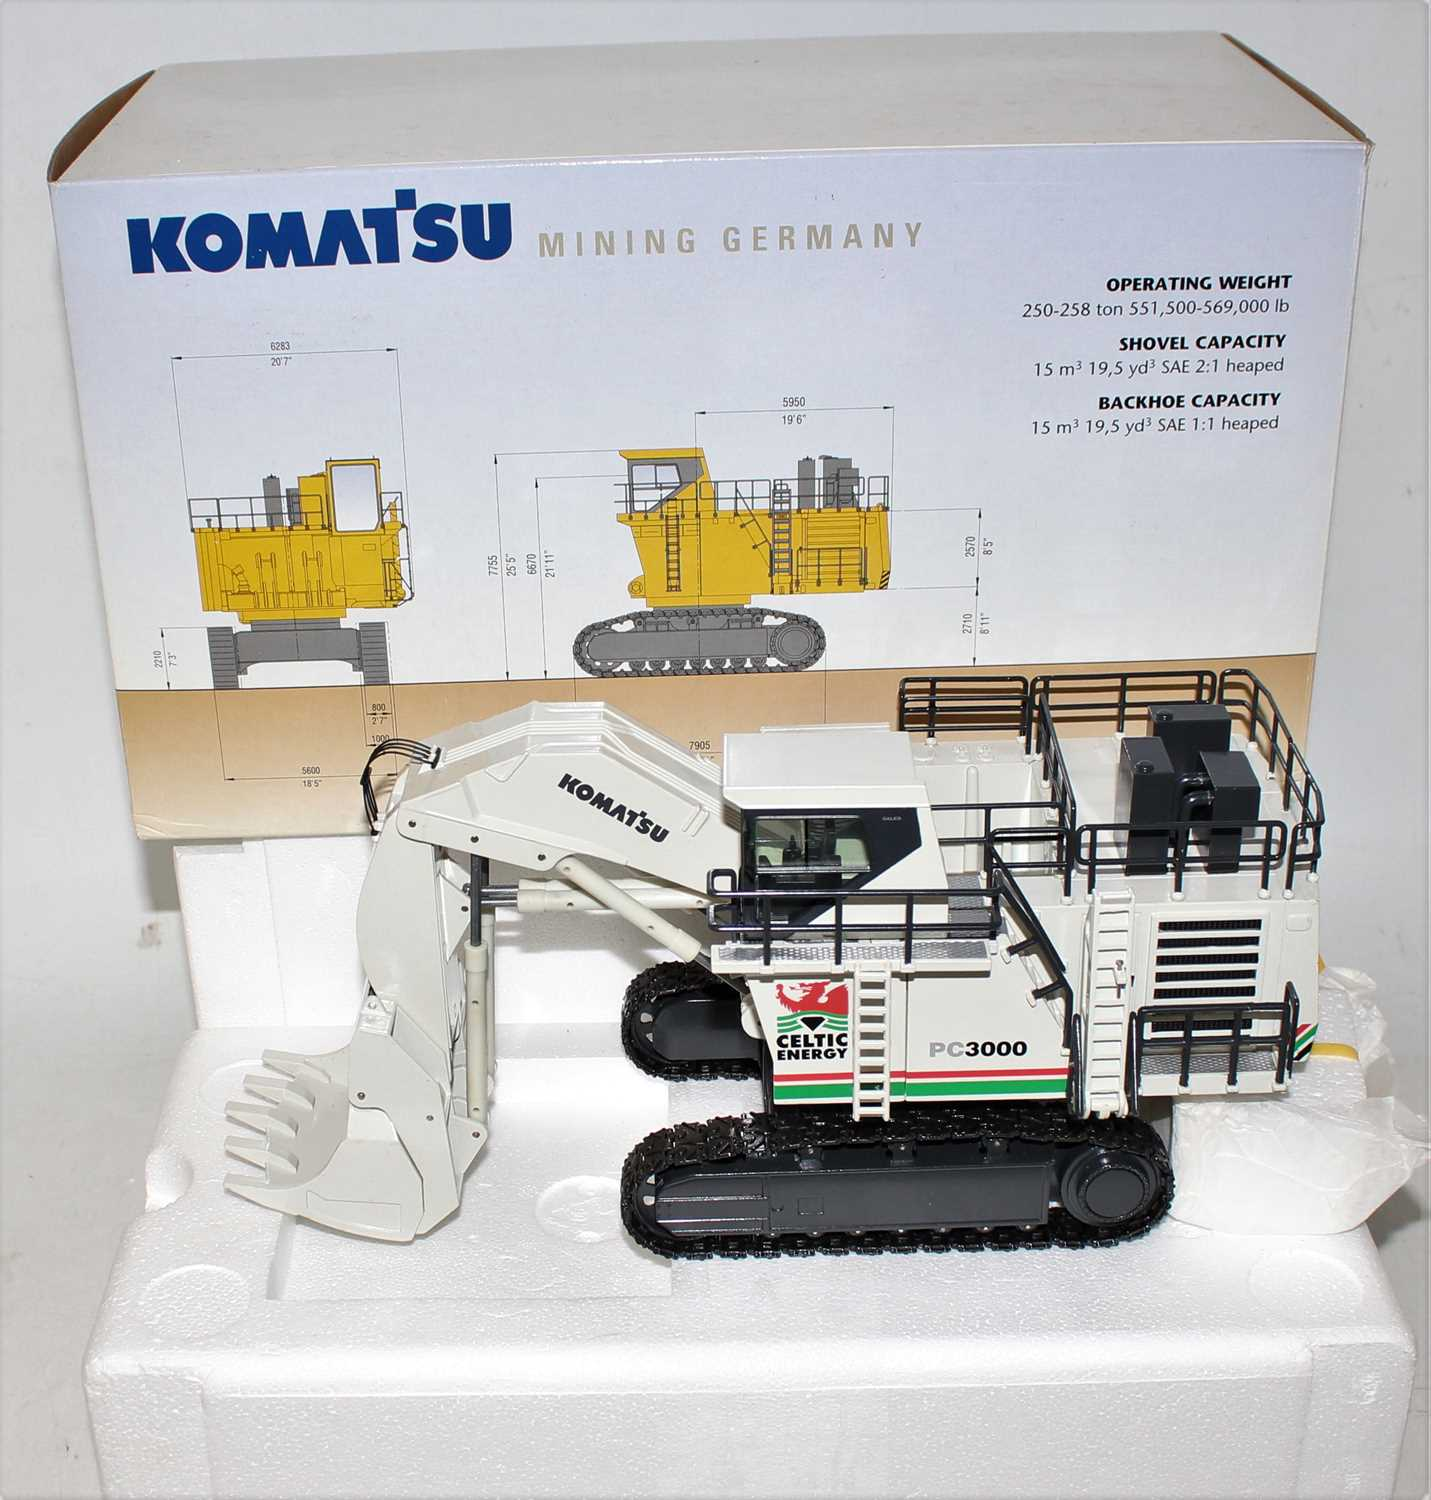 An NZG model No. 6131/01 1/50 scale model of a Komatsu PC3000 Super Shovel finished in off-white